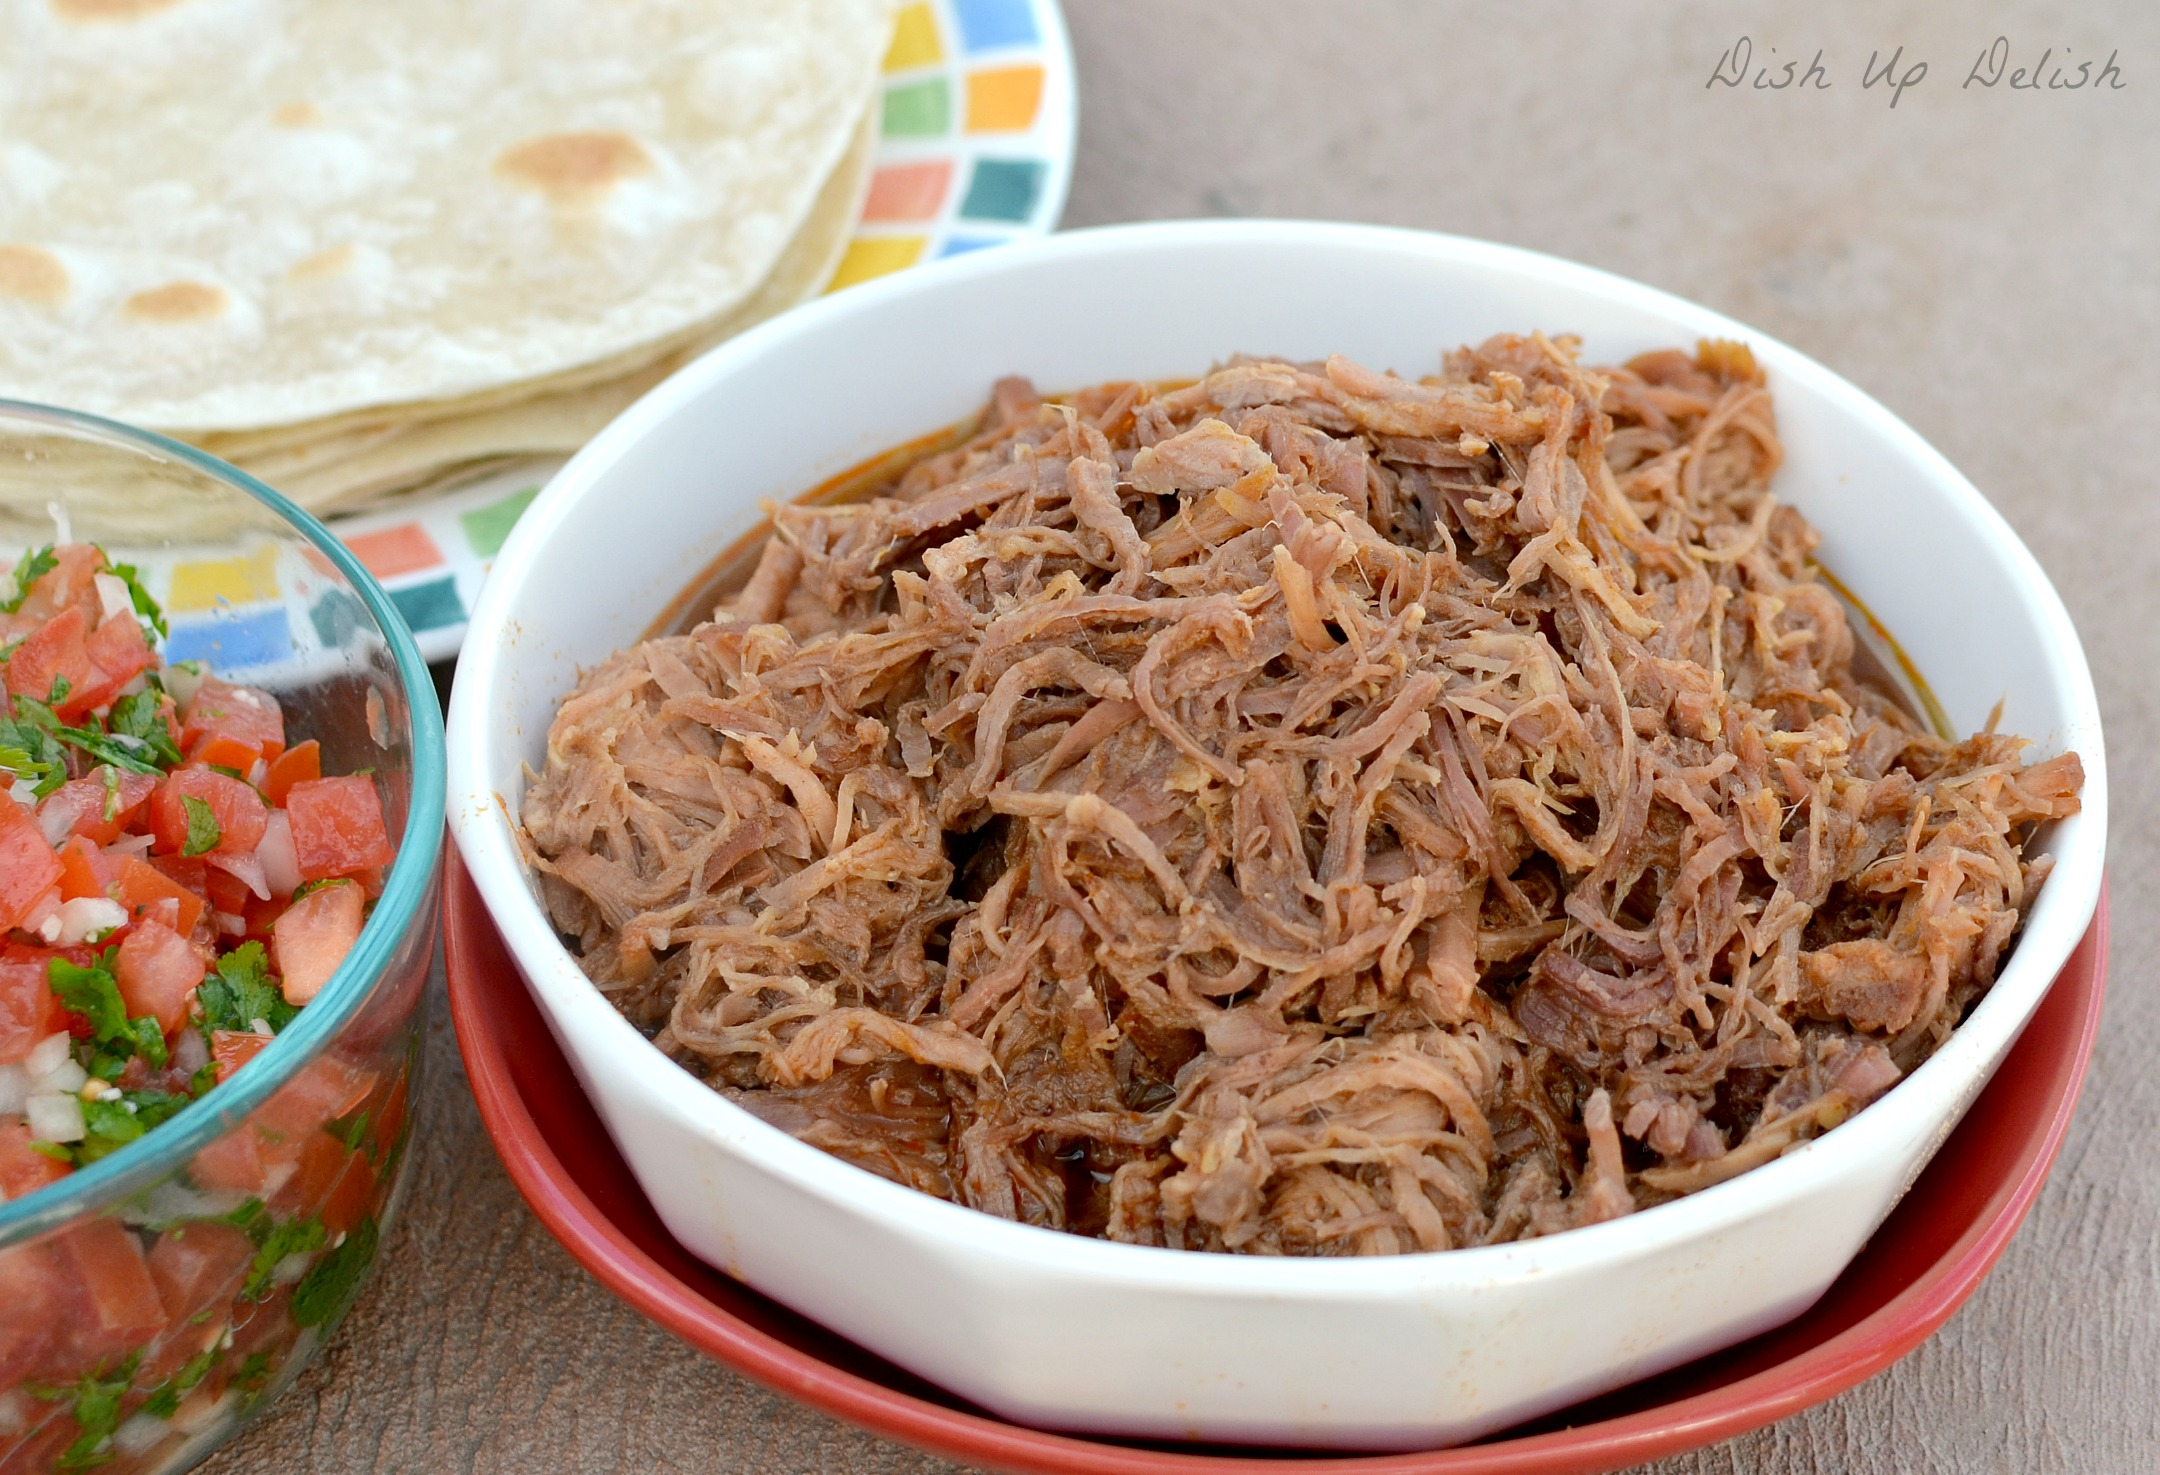 Sweet Pork from Dish Up Delish